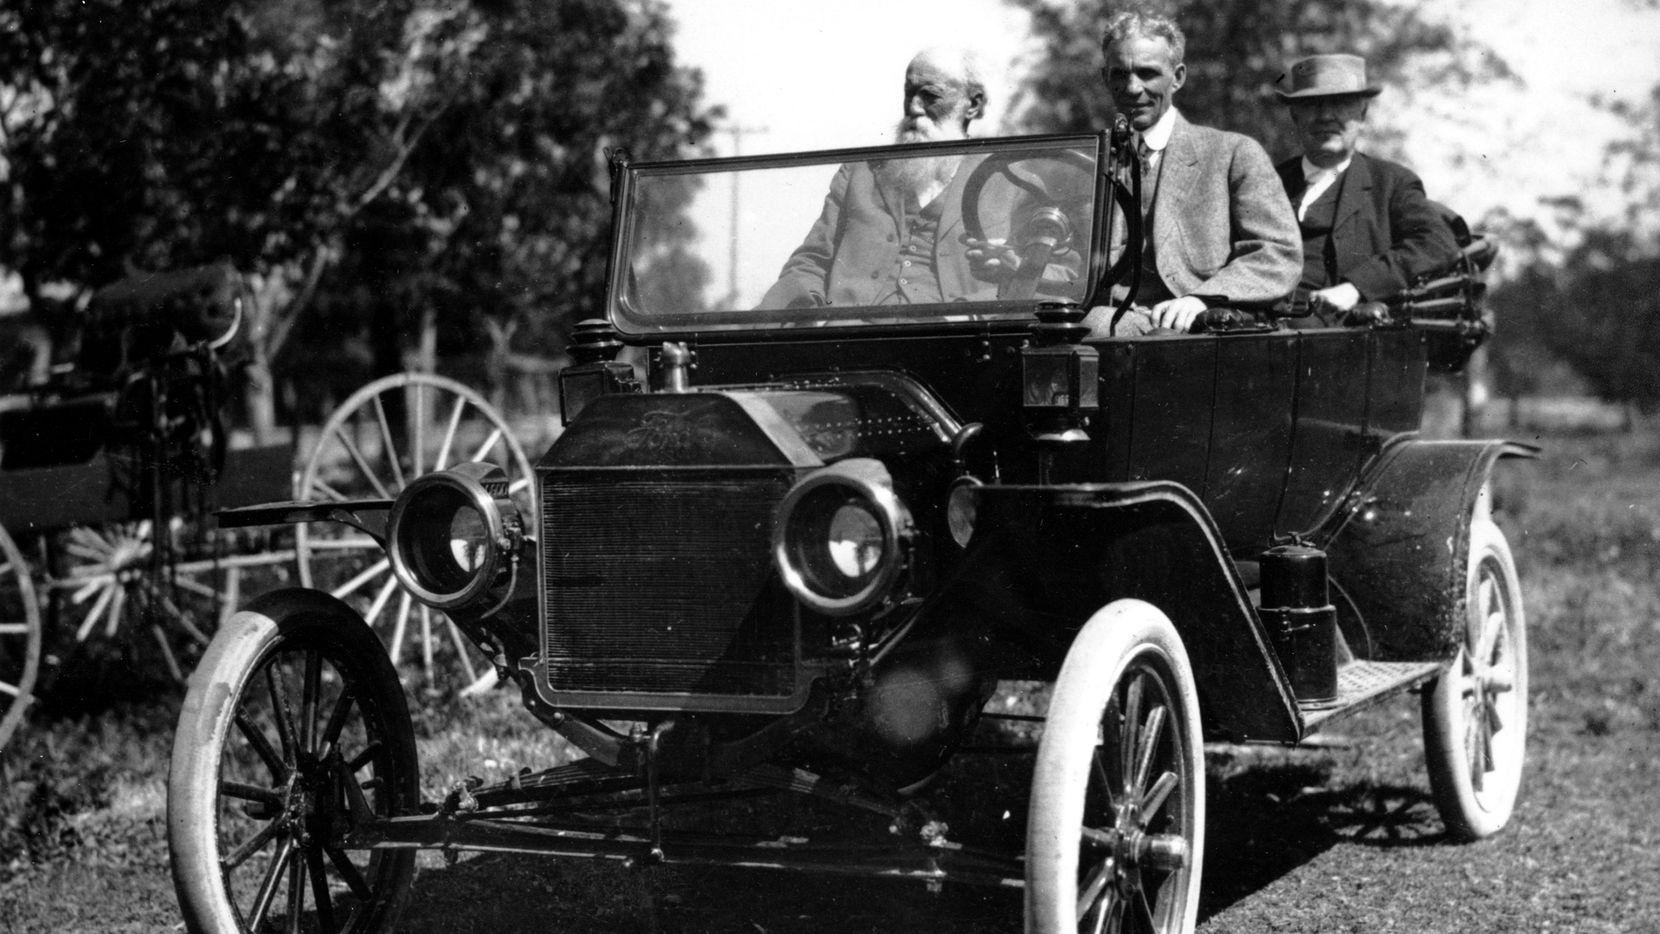 American industrialist Henry Ford (at the wheel) and inventor Thomas Edison, seated in the back, are seen on one of Ford's automobiles at an unknown location in Florida in this 1914 photo. The man on the left is naturalist John Burroughs.